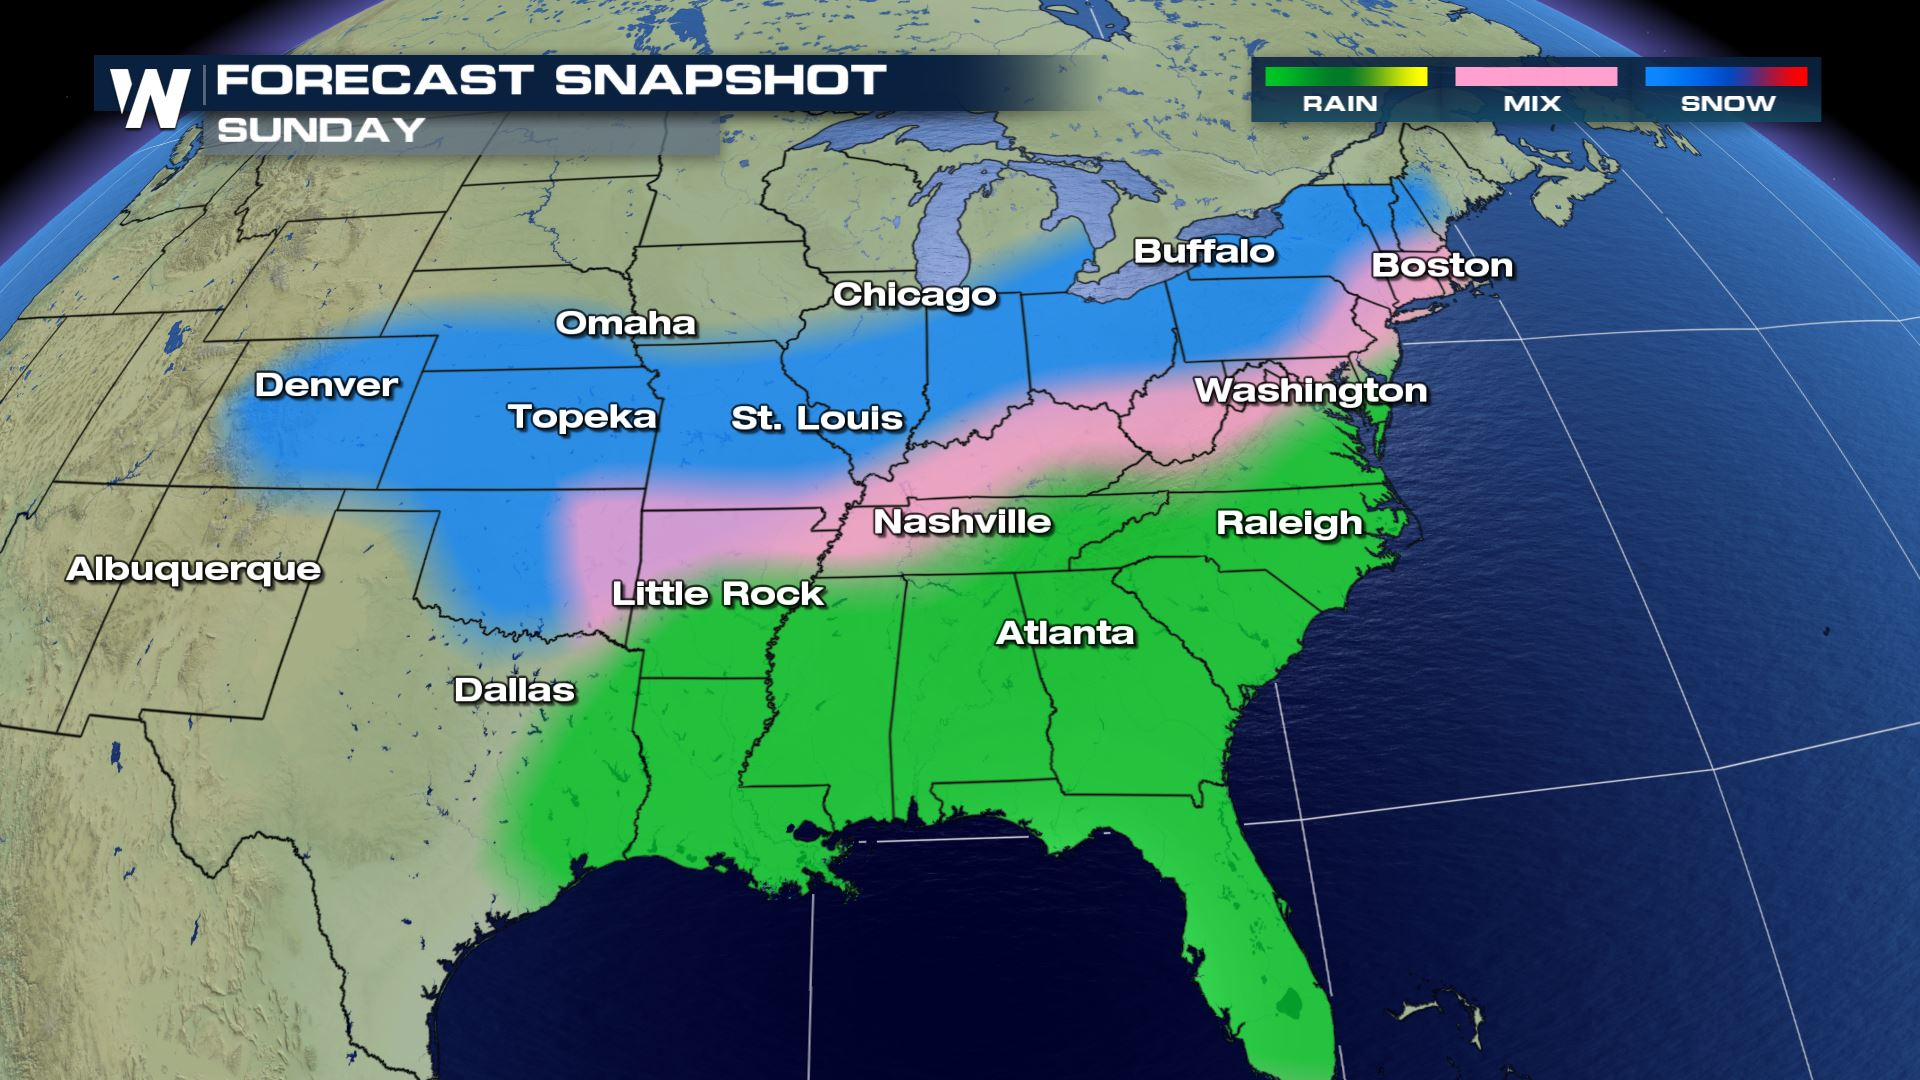 Weekend Storm On The Way For Eastern U.S.